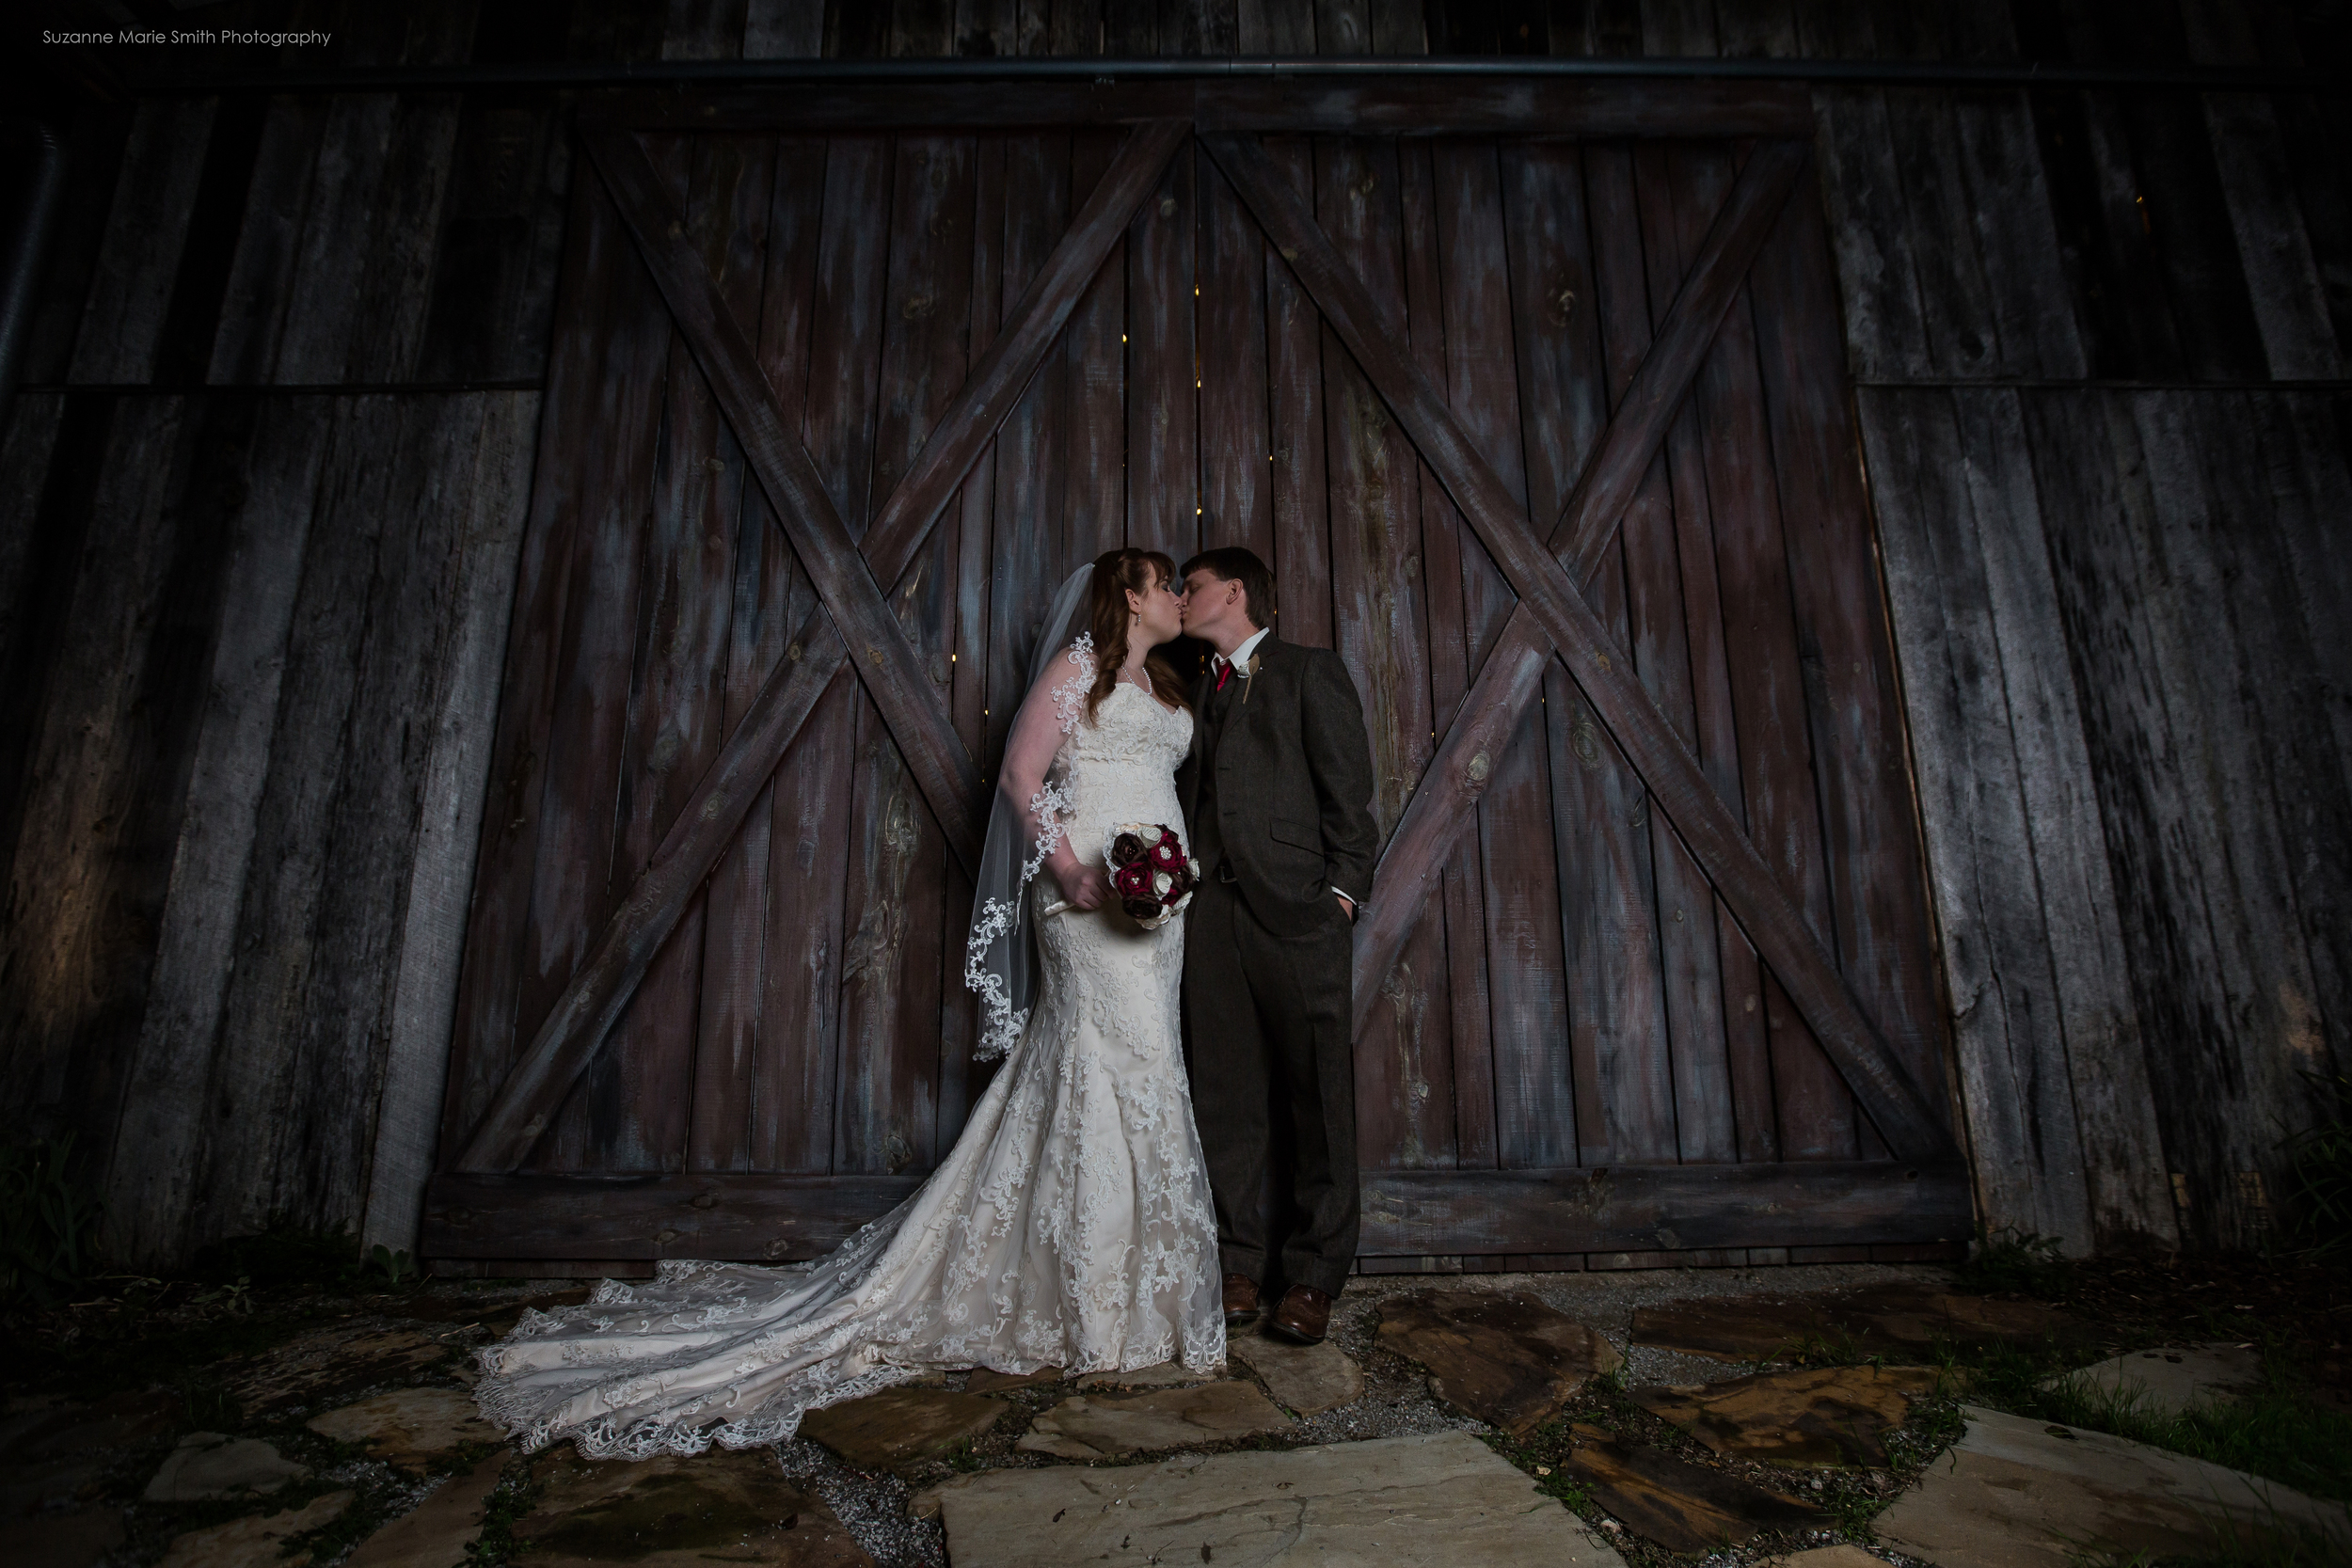 A kiss outside the barn